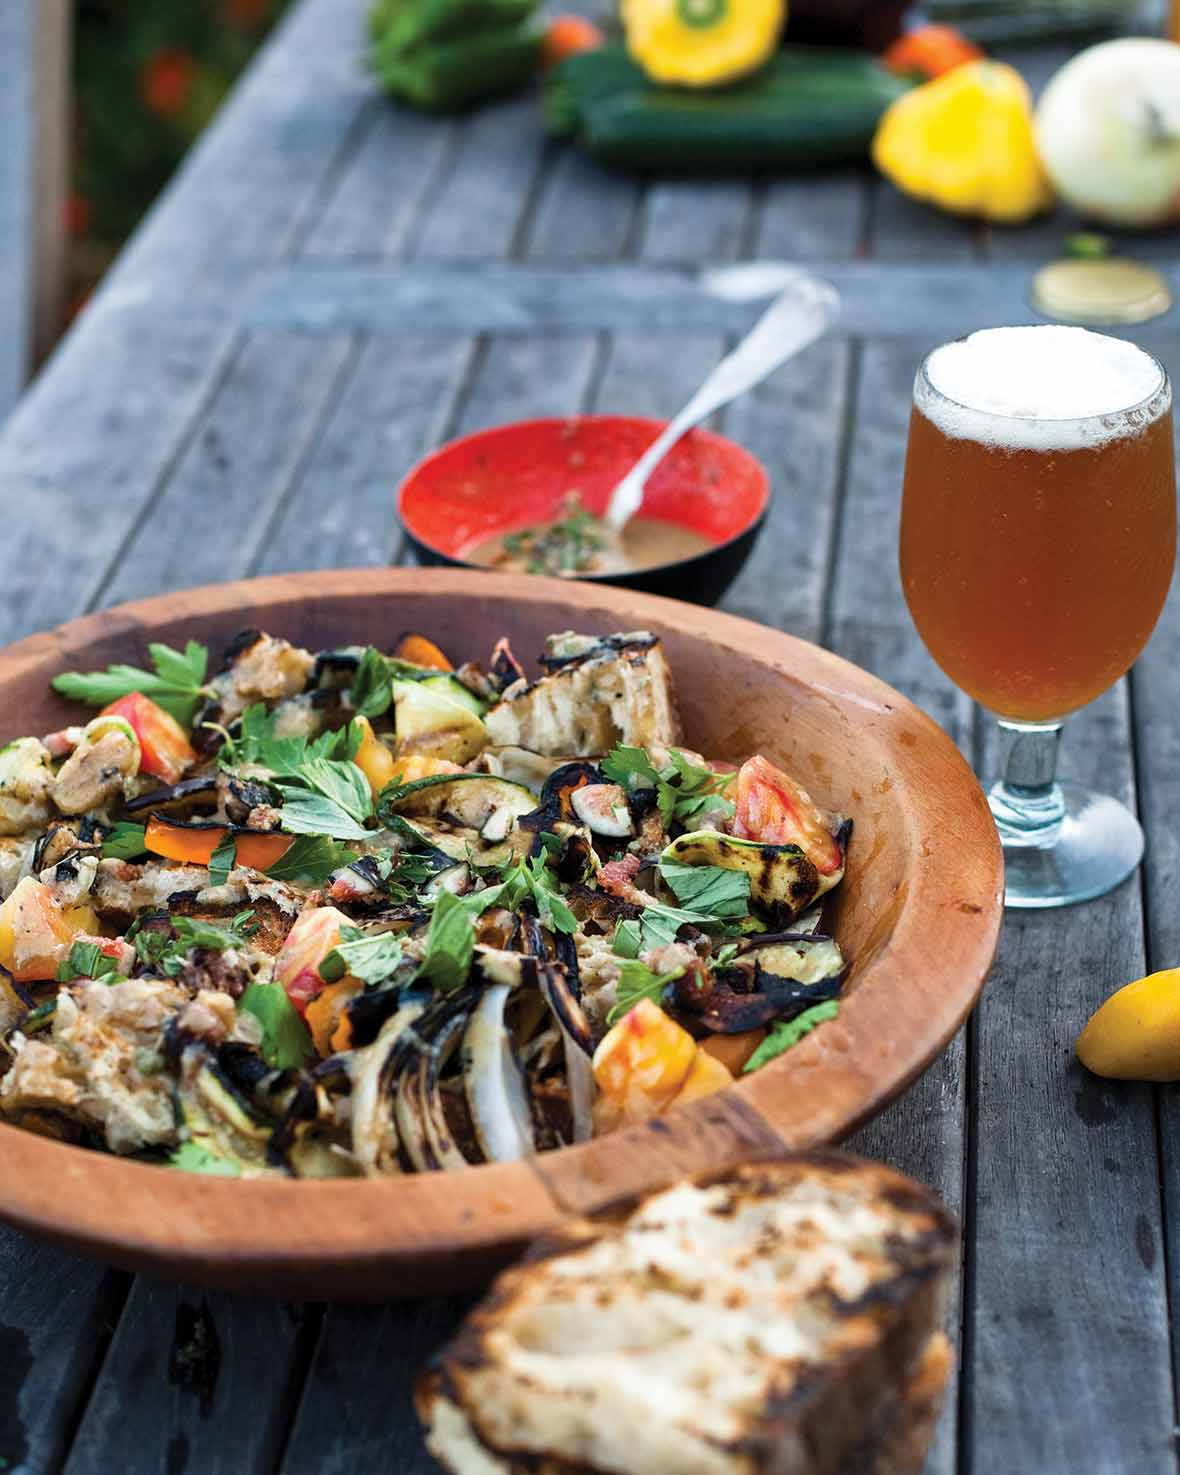 A wooden bowl filled with Escalivada bread salad and a frothy beer on the side.